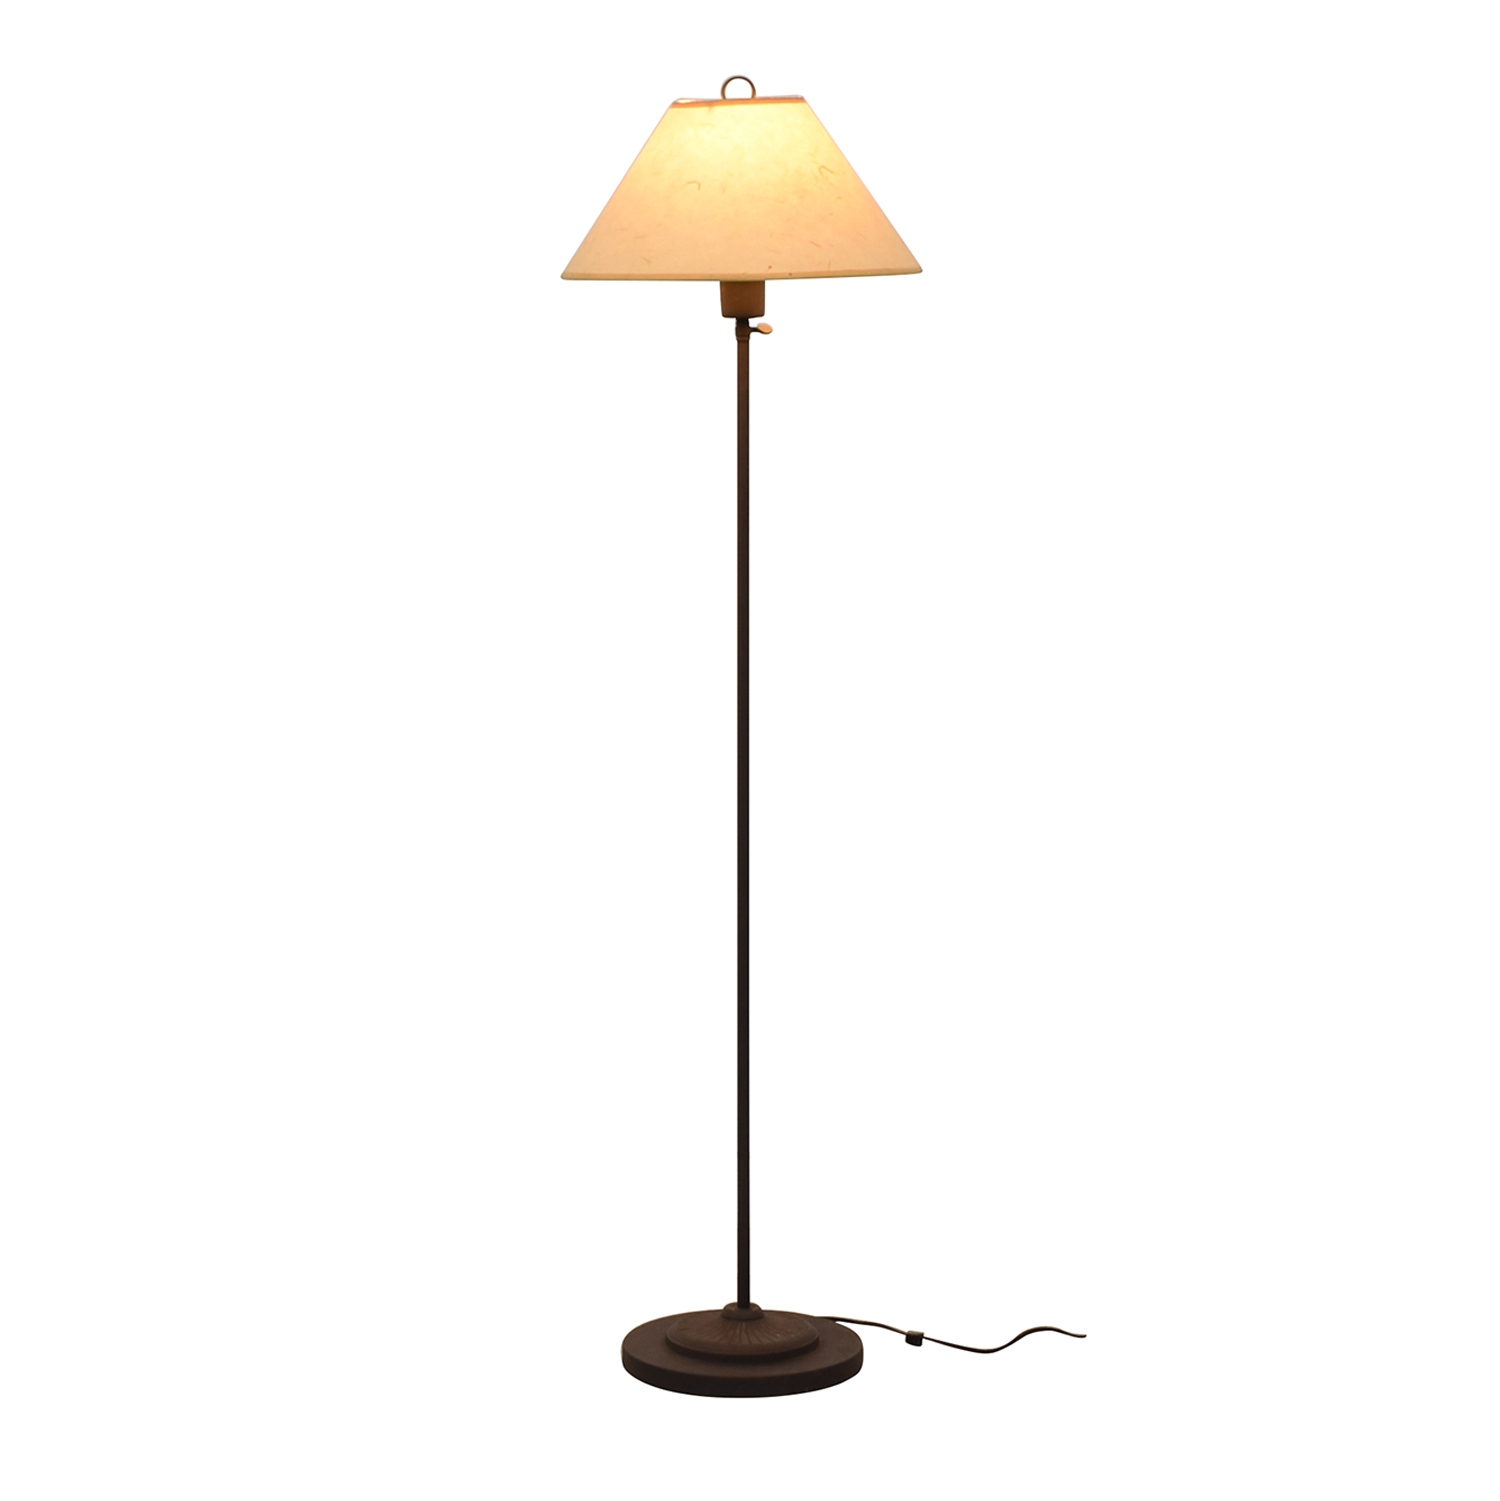 Pottery Barn Pottery Barn Floor Lamp used